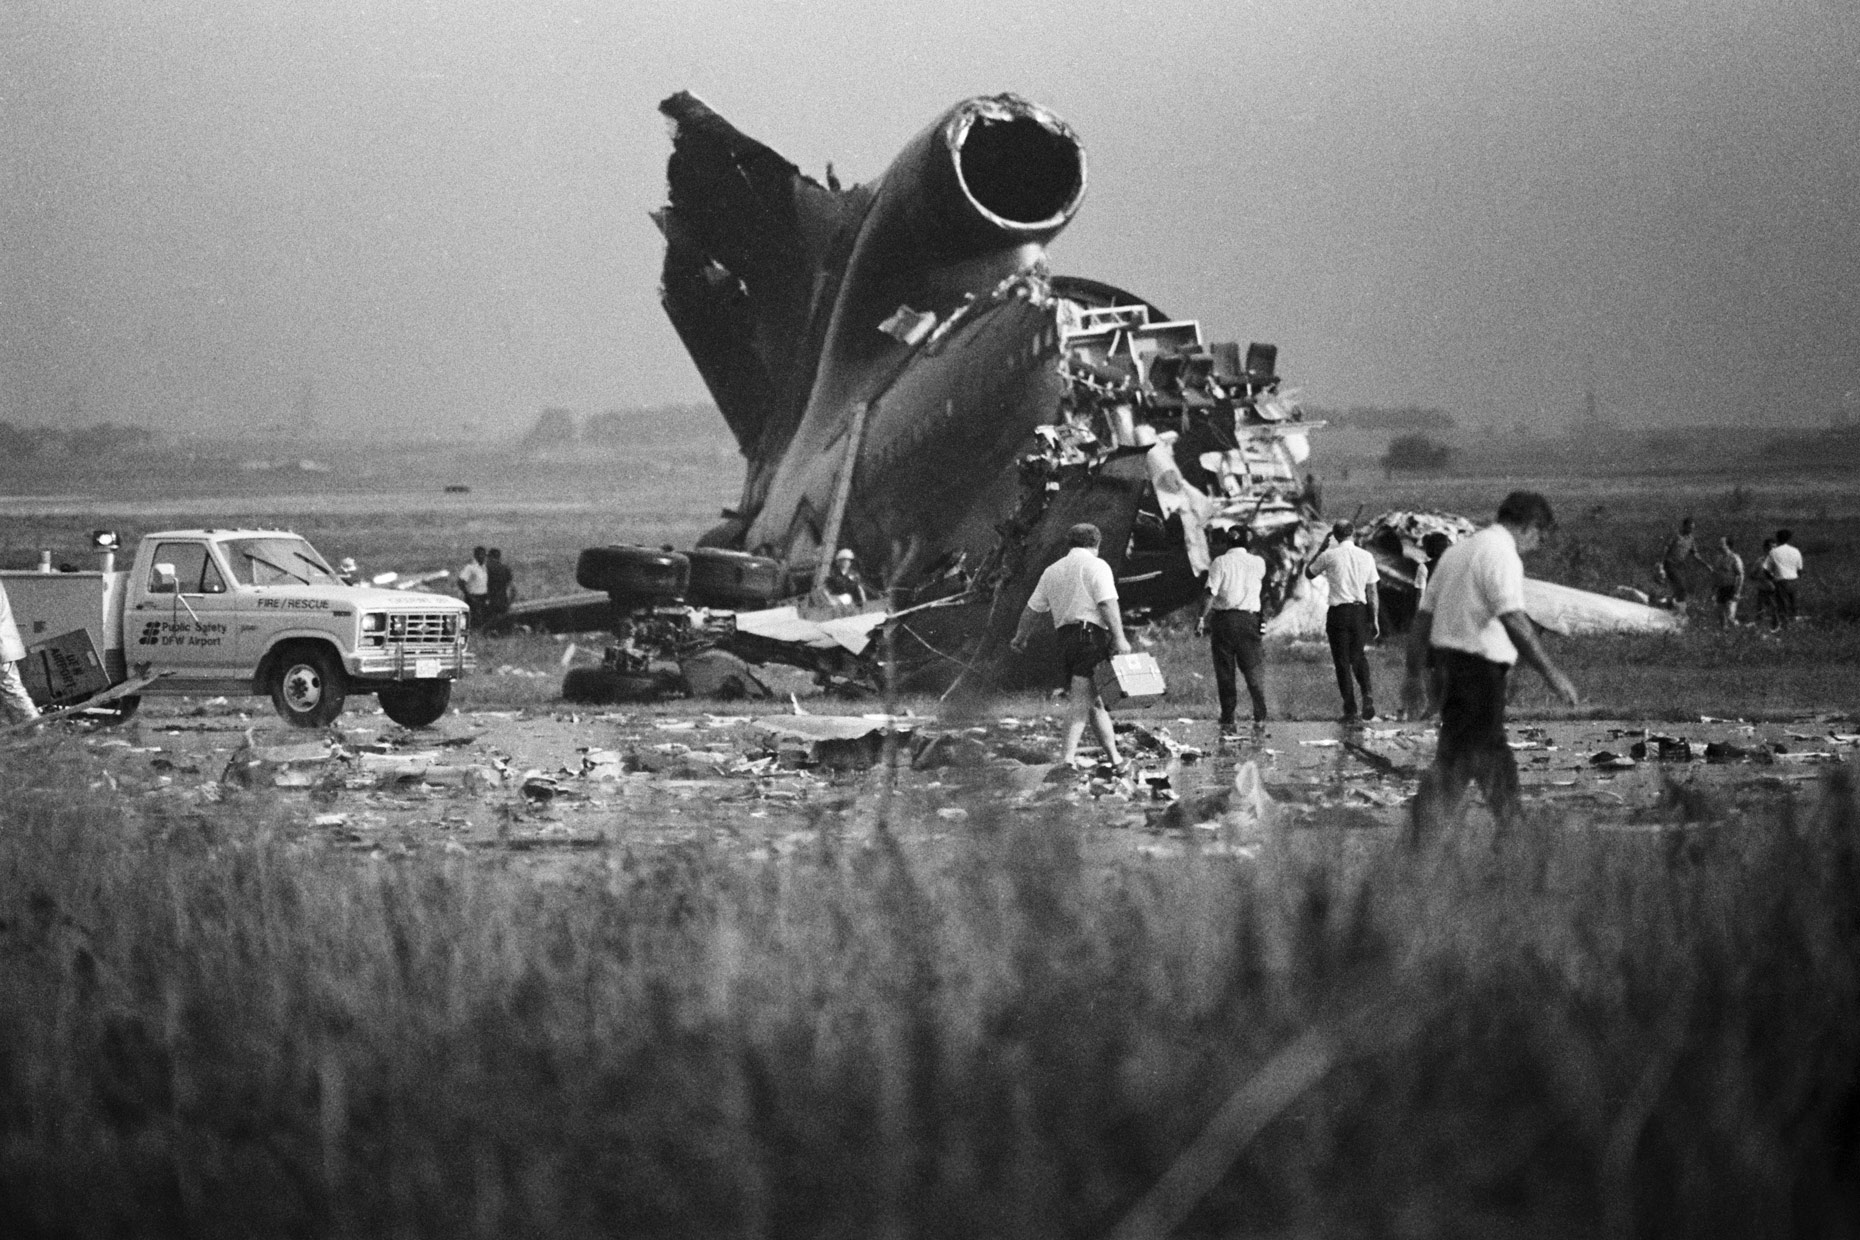 Delta 191 crash at DFW Airport by Kevin Brown